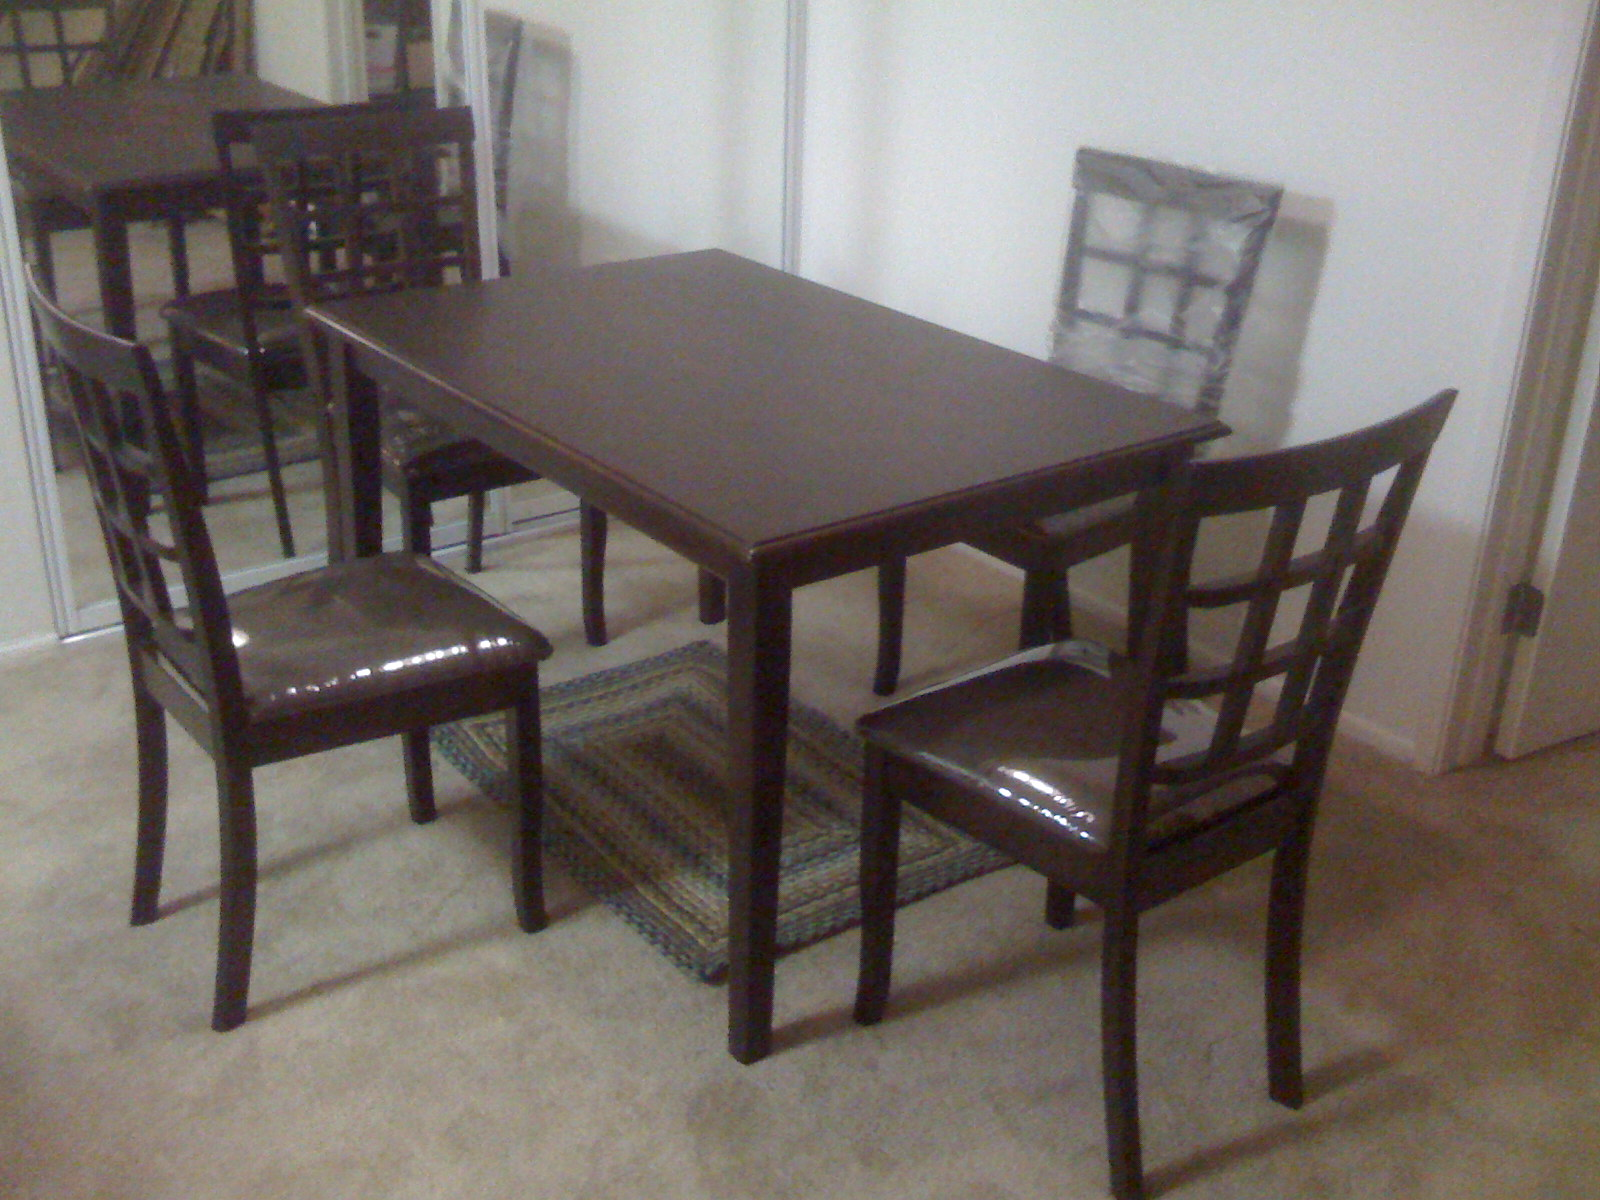 Craigslist Furniture For Sale In Plano Tx to pin